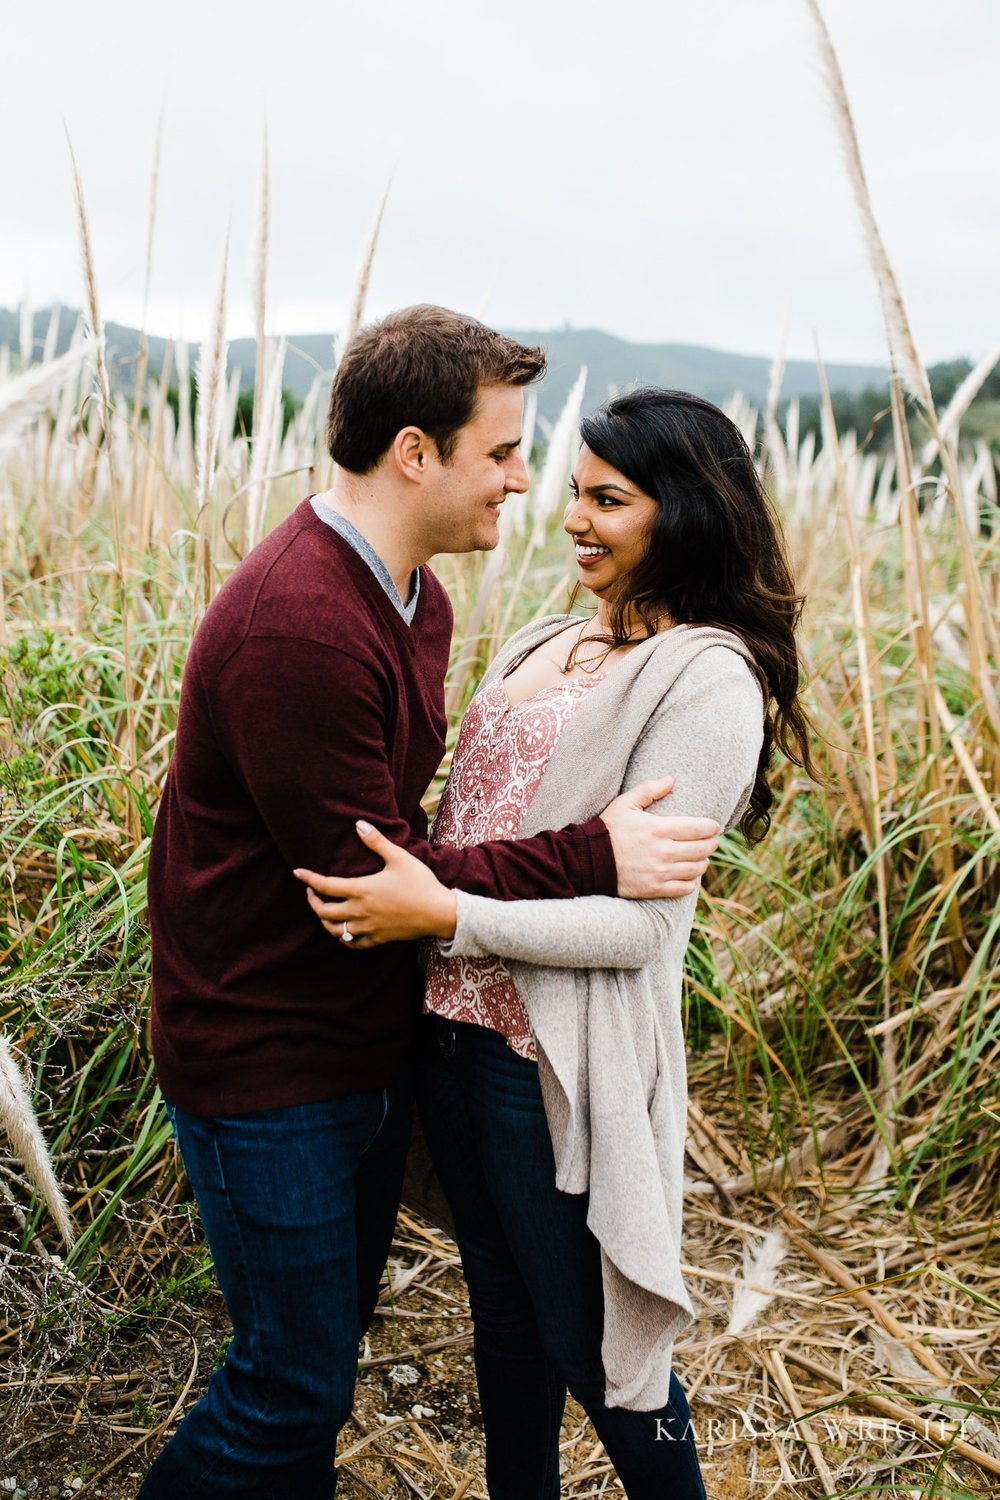 Alex grabs Lipika during their engagement session and she laughs a out loud at their fun and loving relationship.